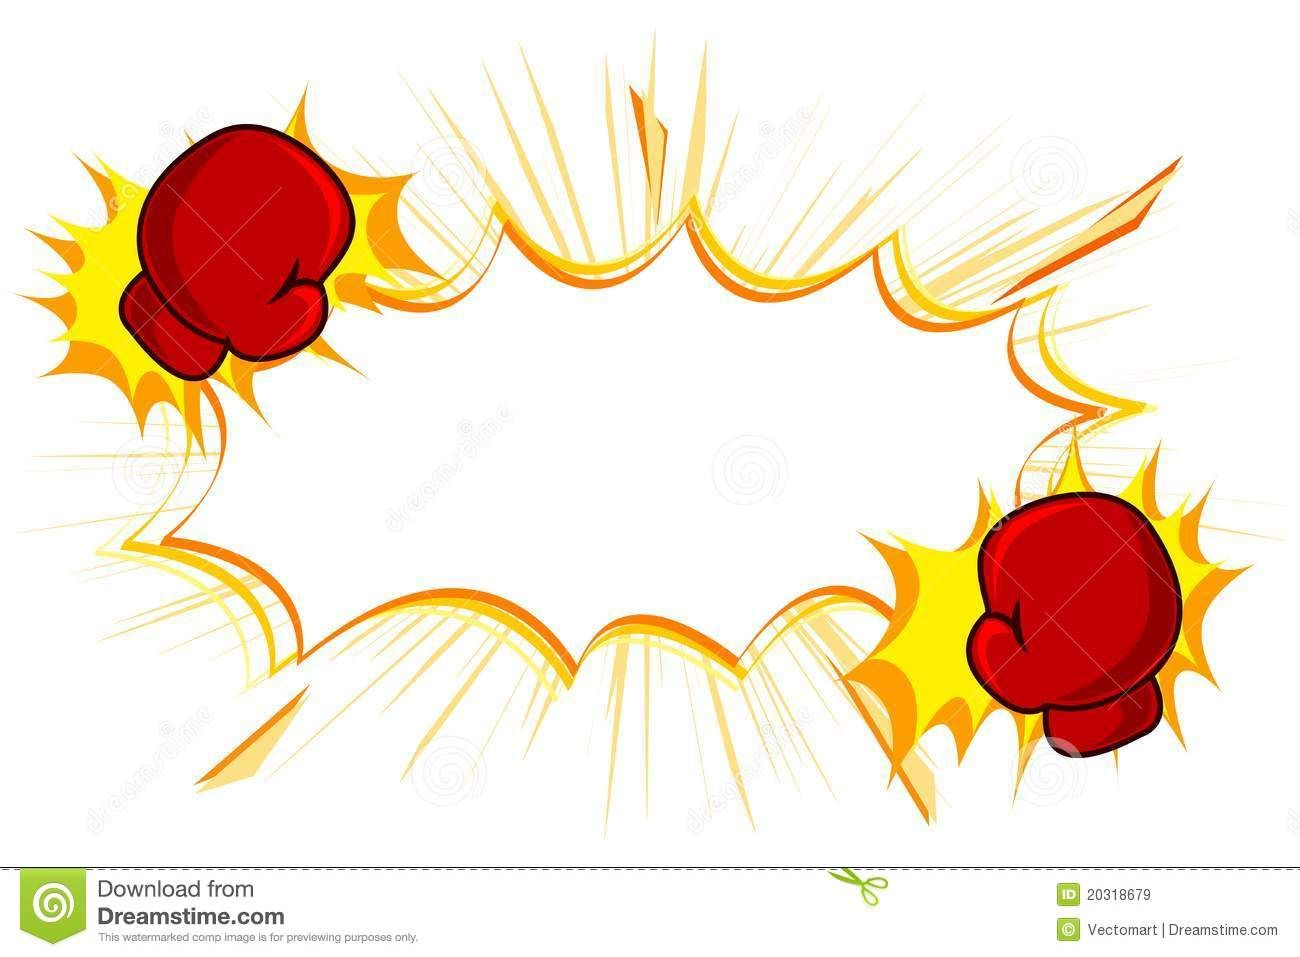 Boxing clipart background. Ring clip art free